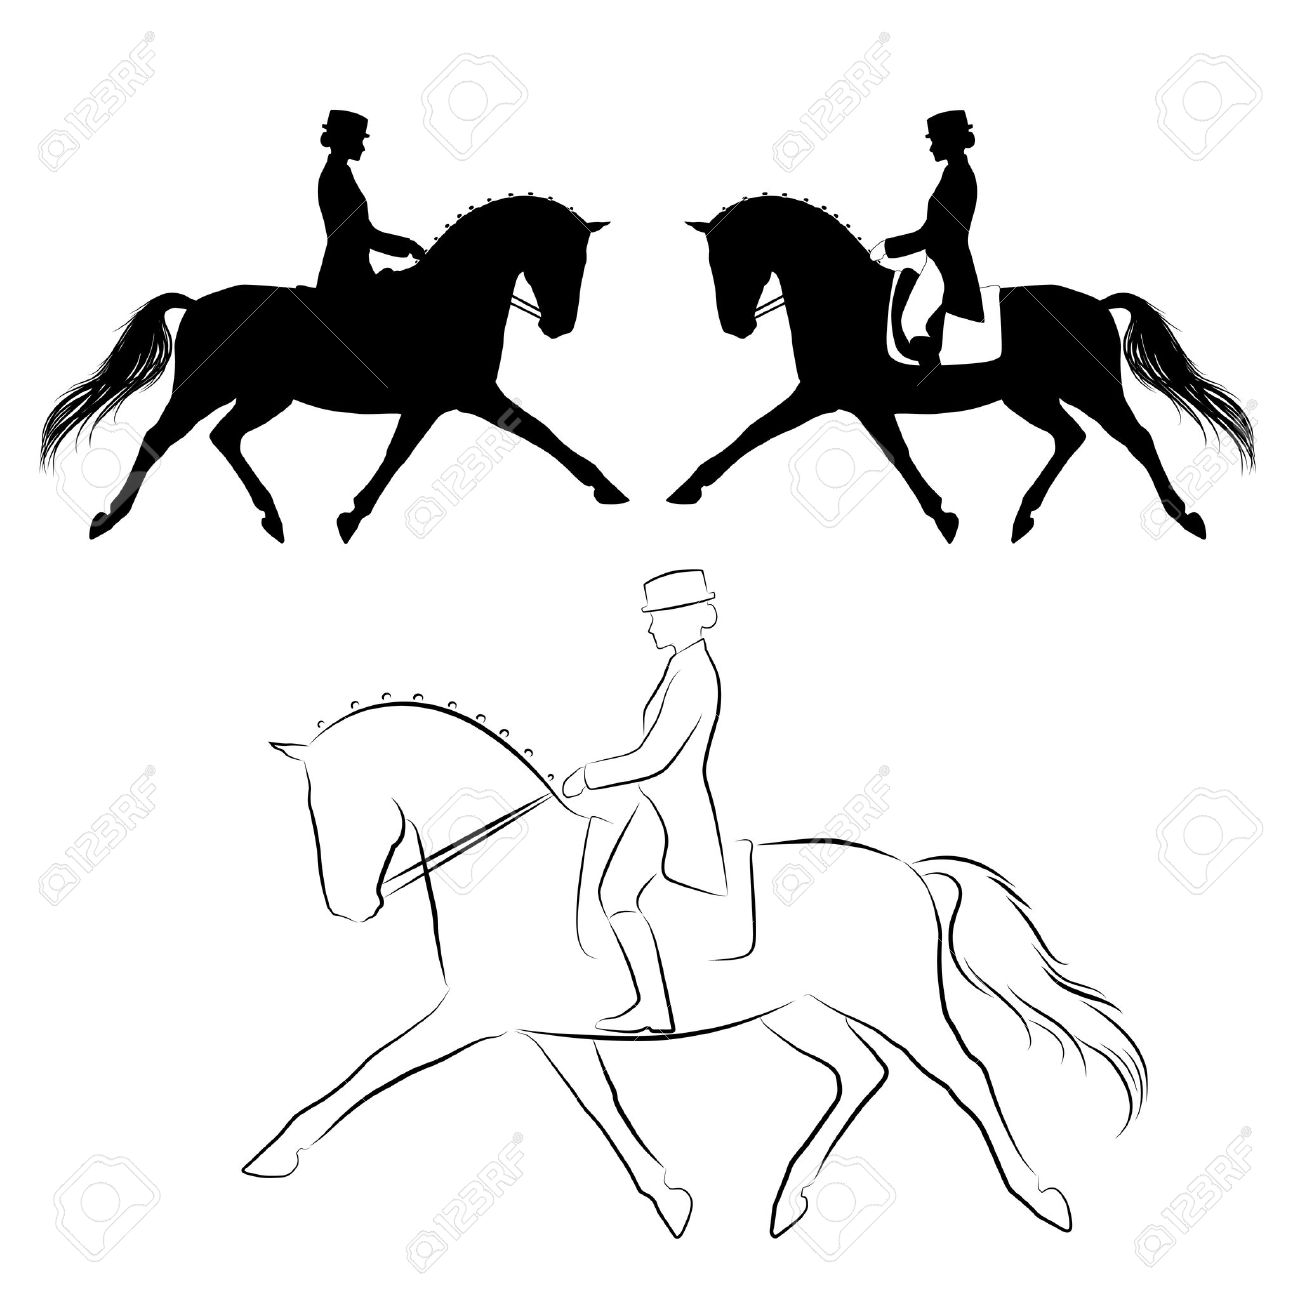 4,290 Dressage Stock Vector Illustration And Royalty Free Dressage.